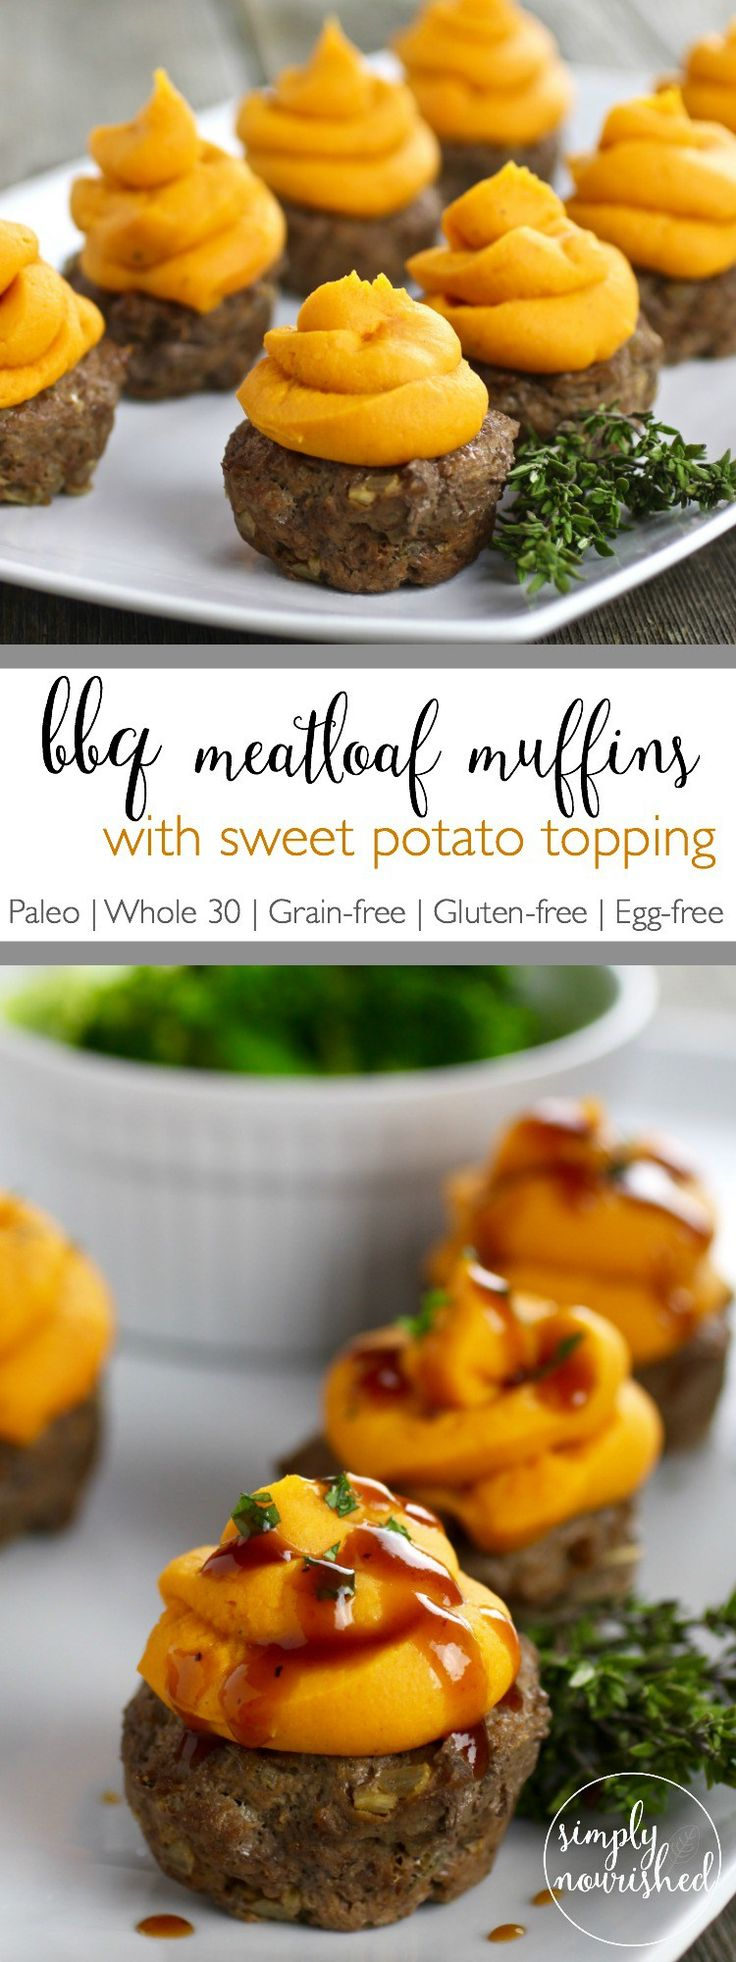 BBQ Meatloaf Muffins with Sweet Potato Topping |Paleo | Whole 30 | Egg-free | http://therealfoodrds.com/bbq-meatloaf-muffins/